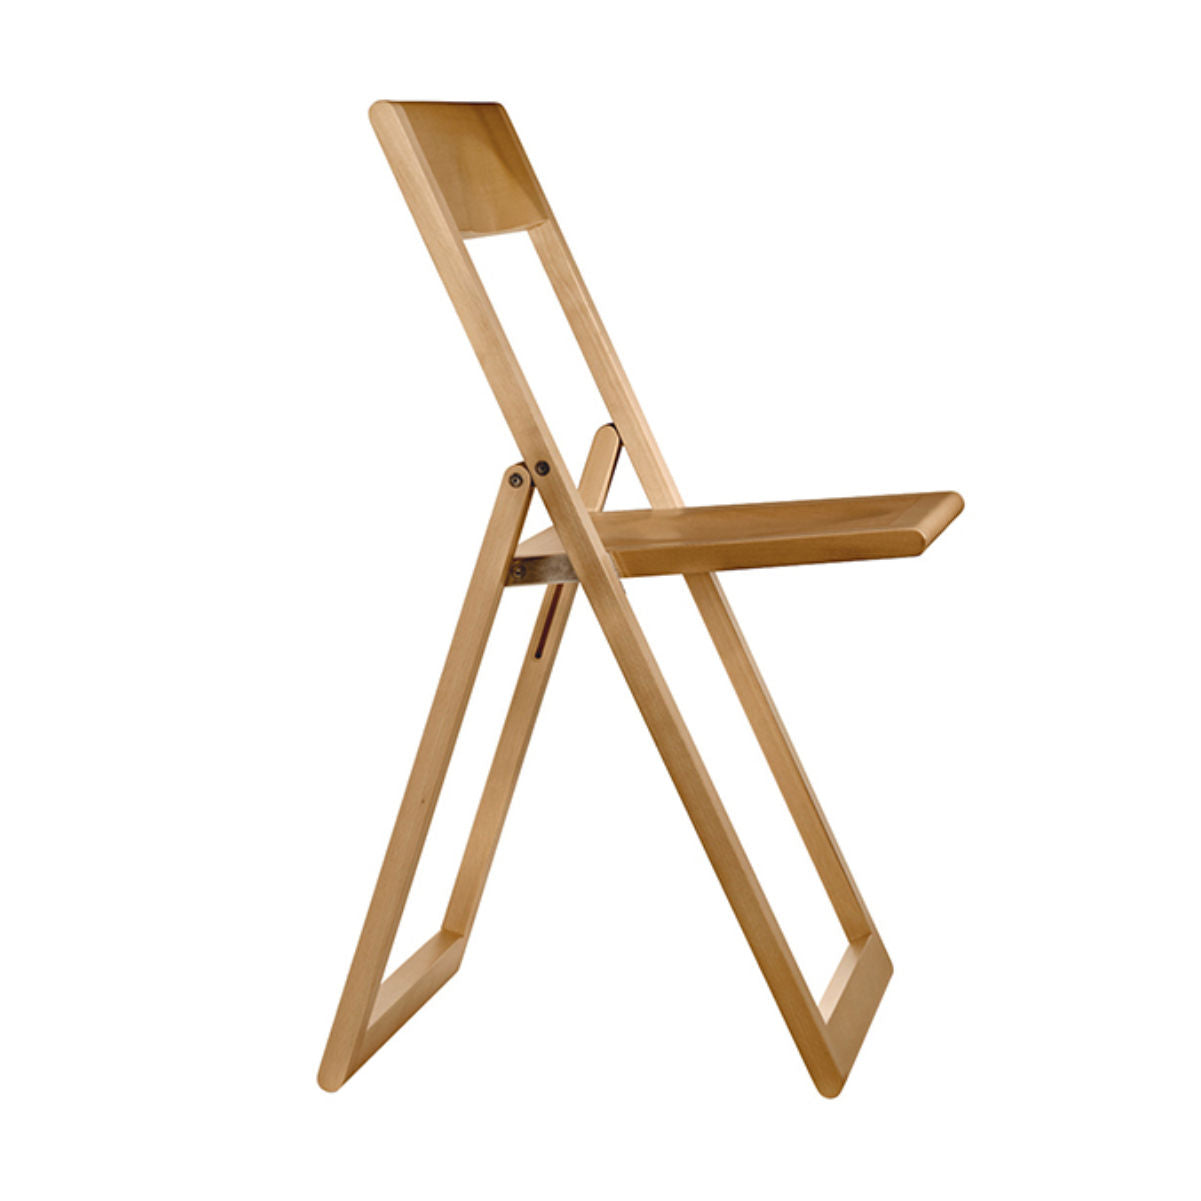 Magis Aviva folding chair